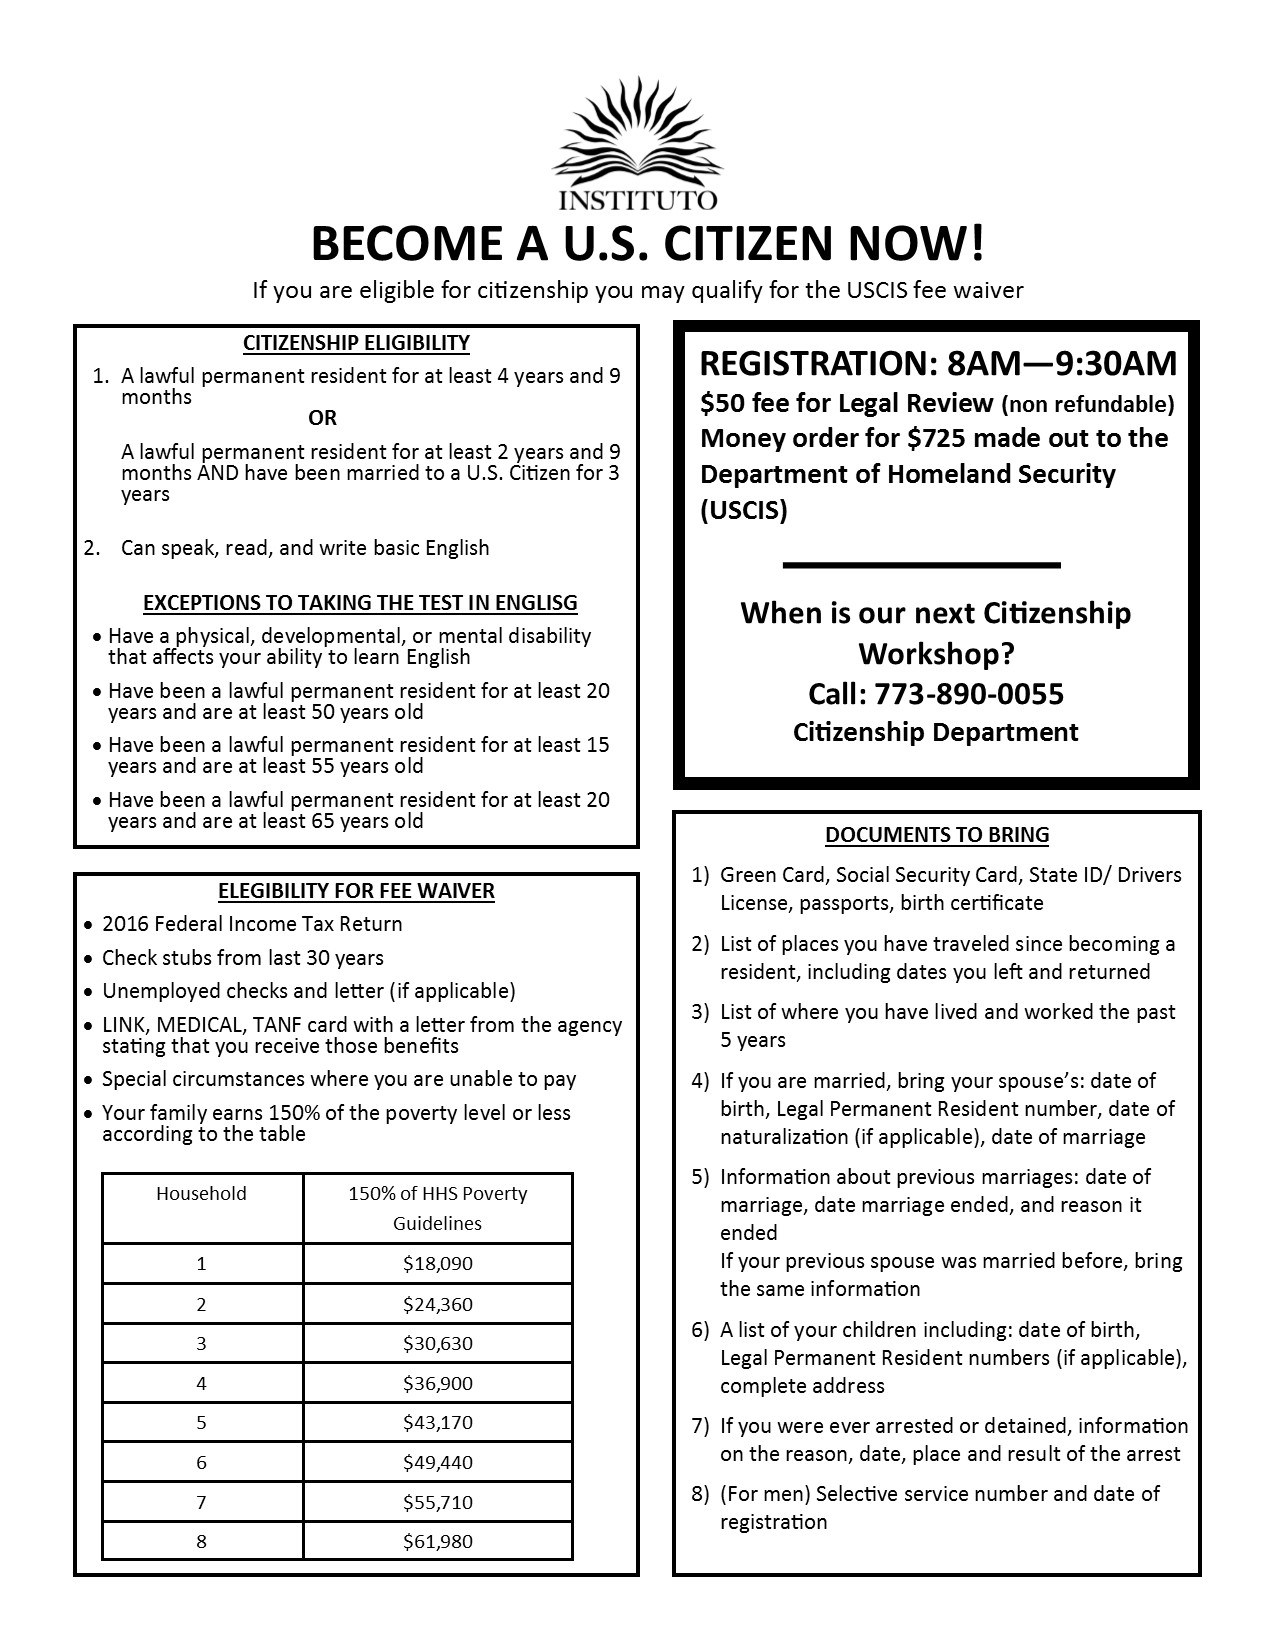 Citizenship services our programs services instituto del if you would like to know if you are eligible for immigration relief please call us at 773 890 0055 and ask for the citizenship department xflitez Choice Image